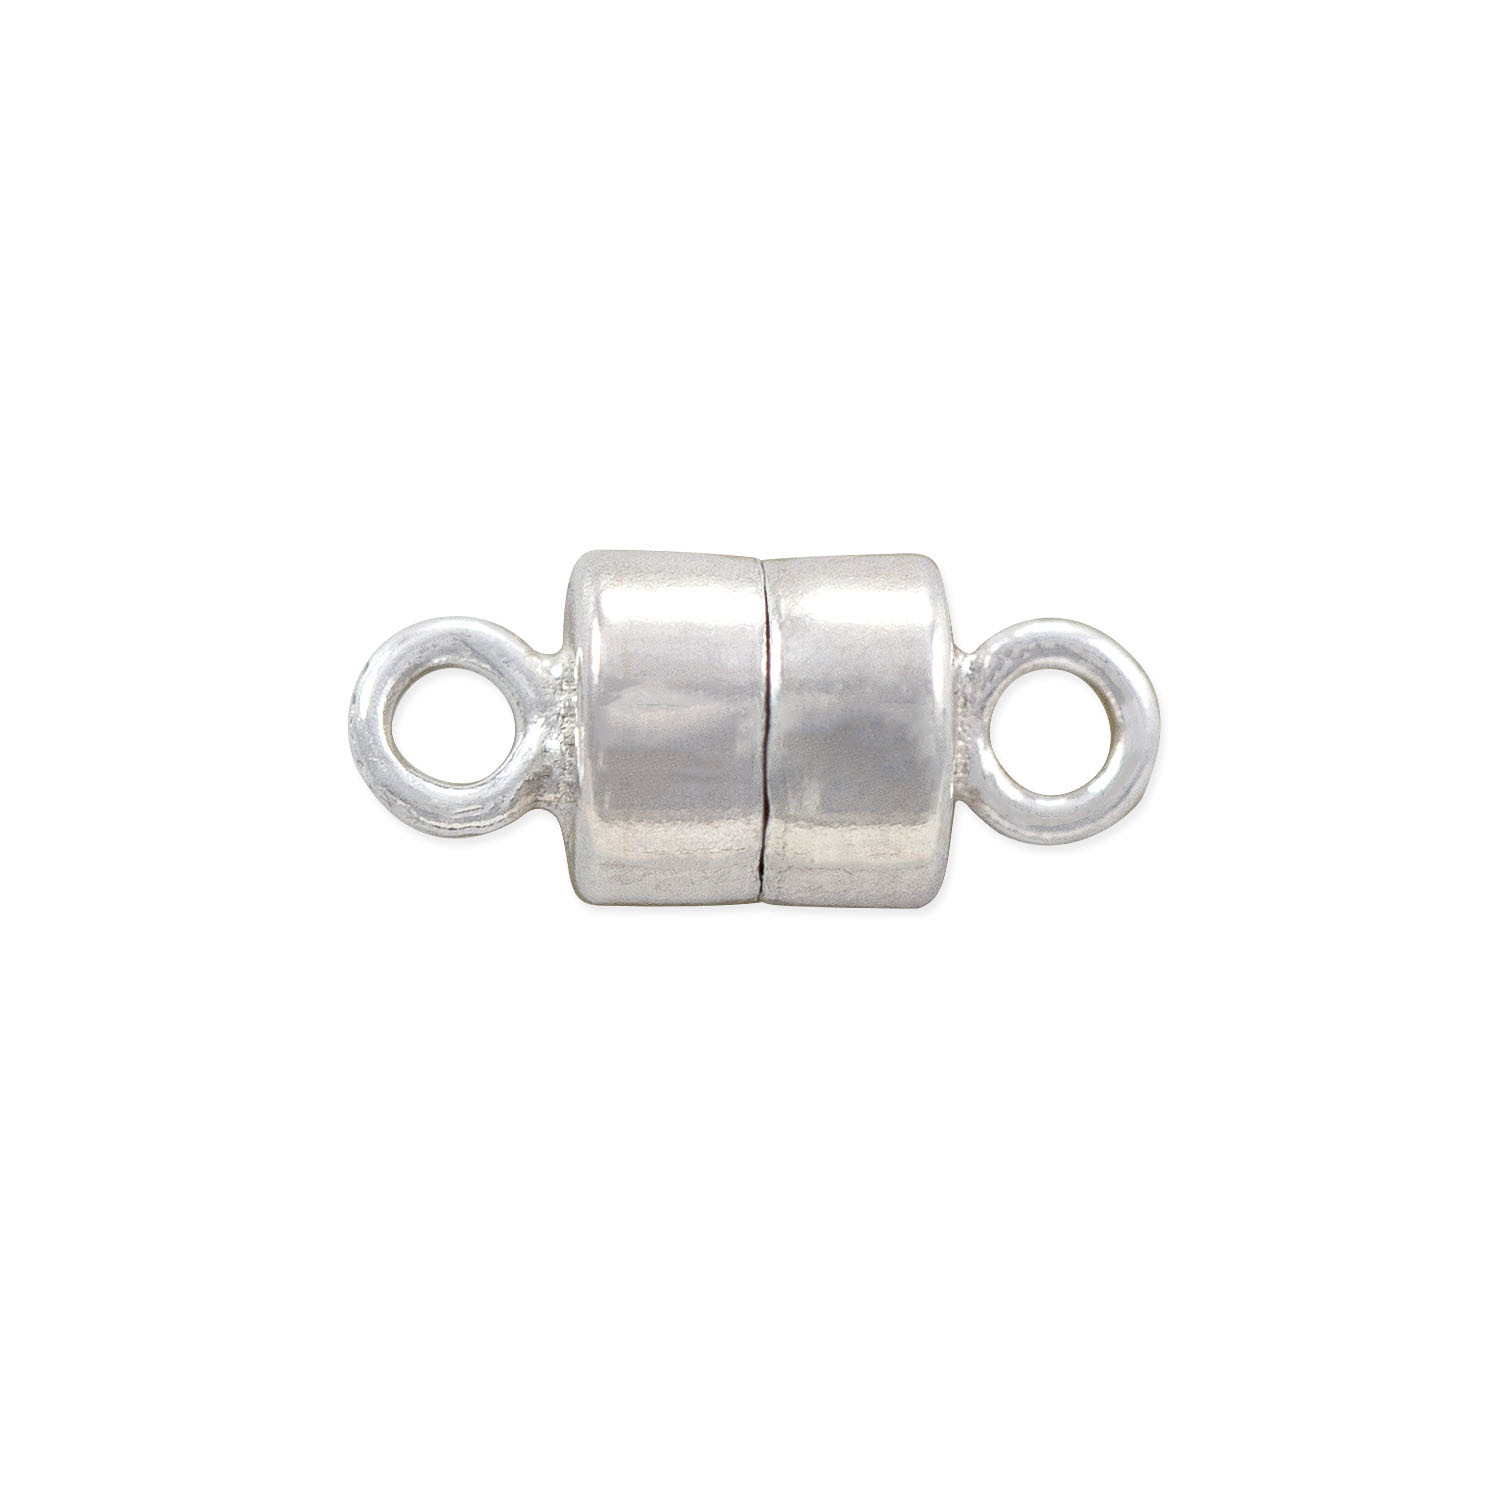 Magnetic Clasp 10x4 3mm Sterling Silver Jewelry Making